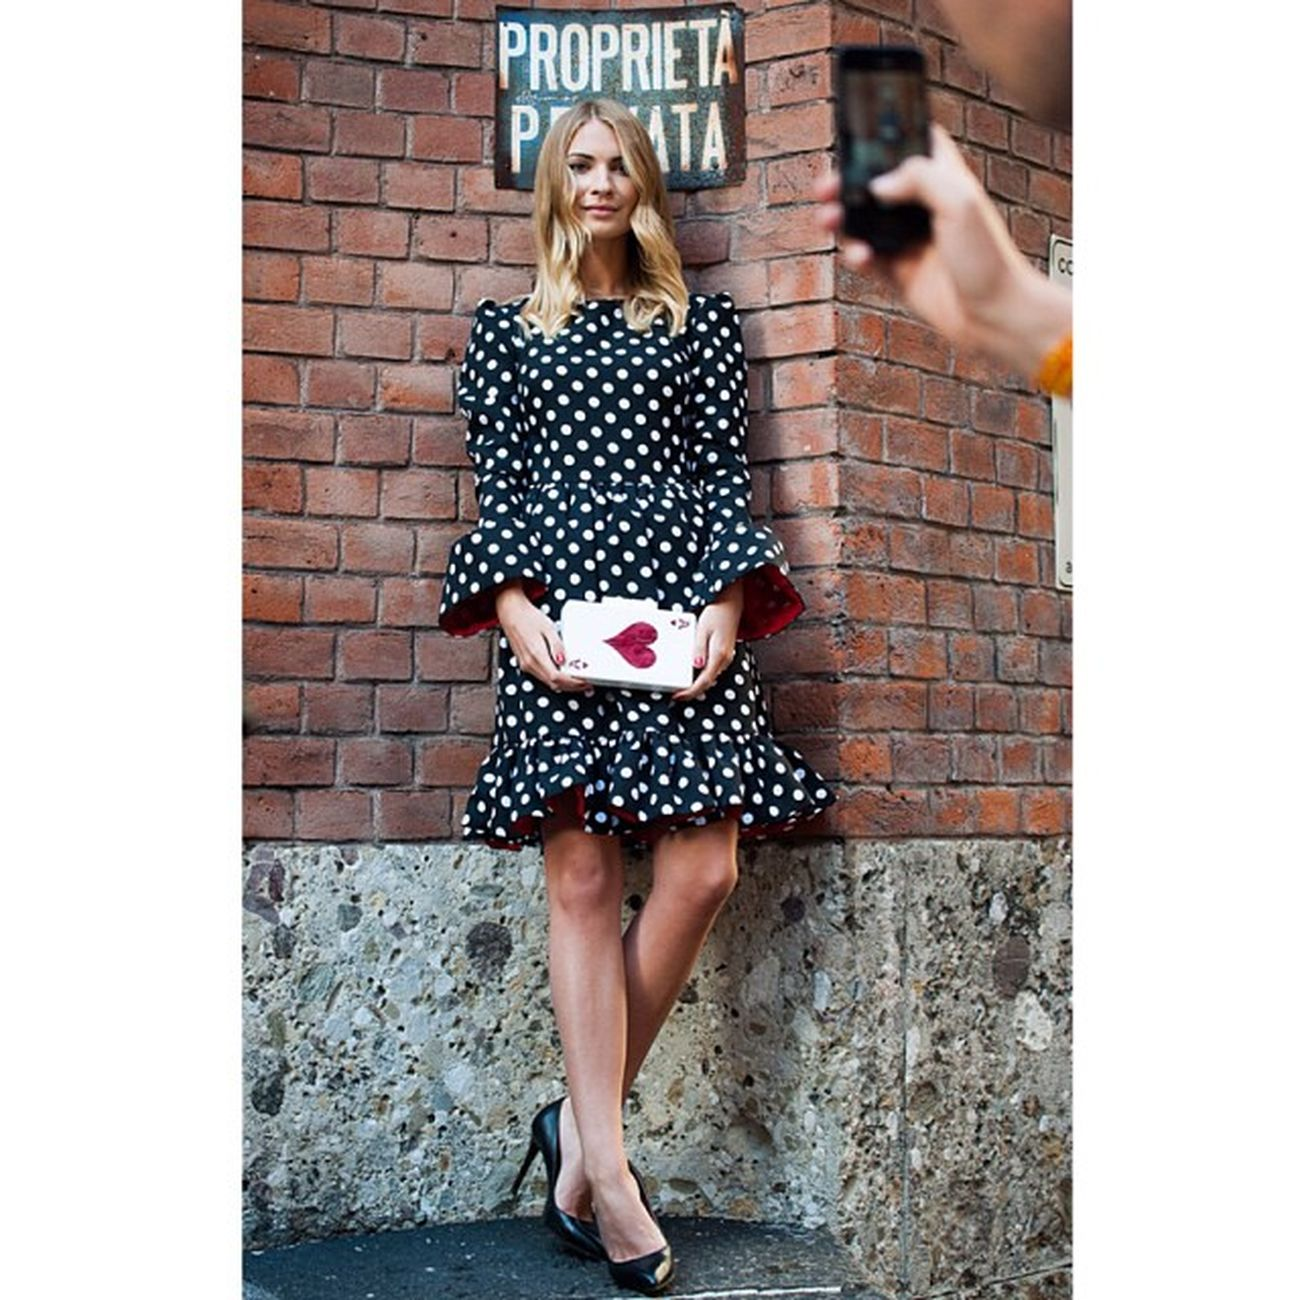 @kyklamasha is a doll ? wearing a polka dot dress matched with her Queen of Hearts for the Milan Fashion Week SS2014!! Thank you Maria!!! ??❤️?? Kyklamasha Uraniagazelli Ss14 Mfw queenofhearts